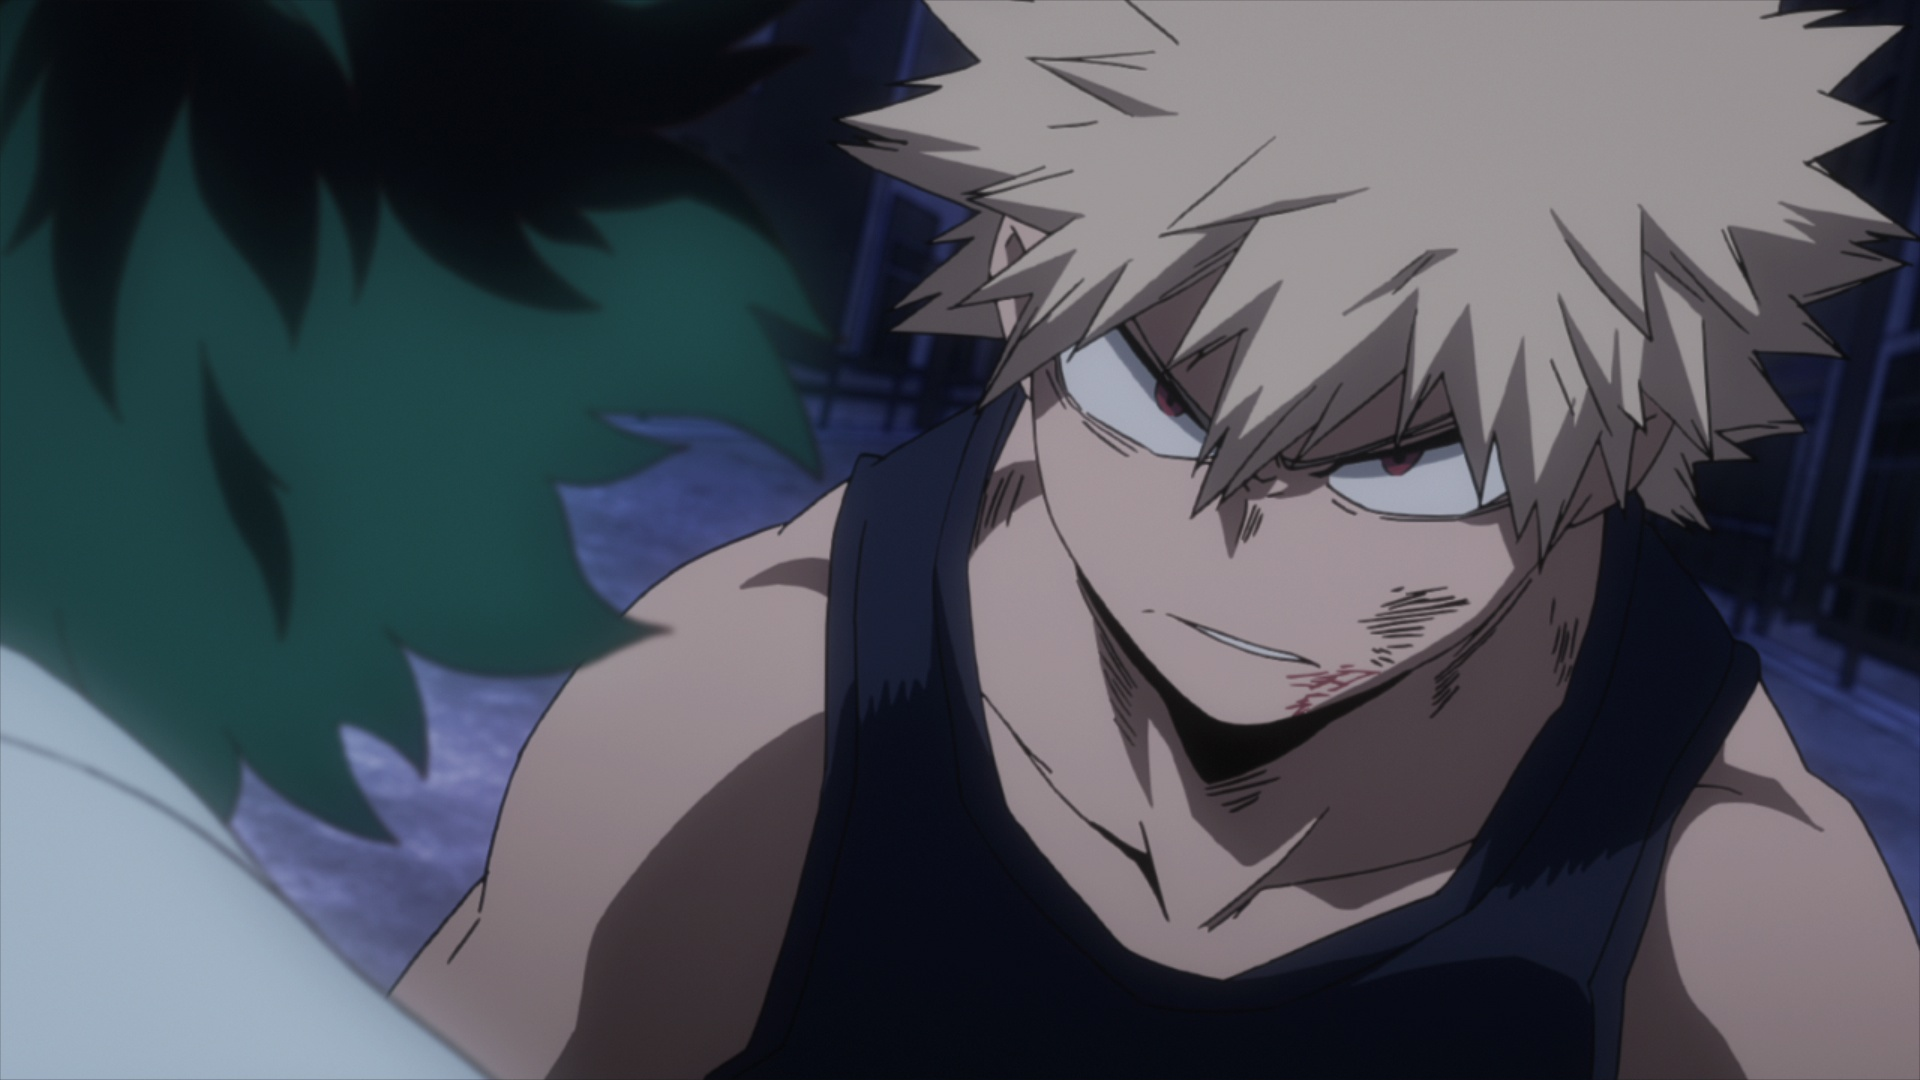 Watch My Hero Academia Season 3 Episode 61 Sub & Dub | Anime